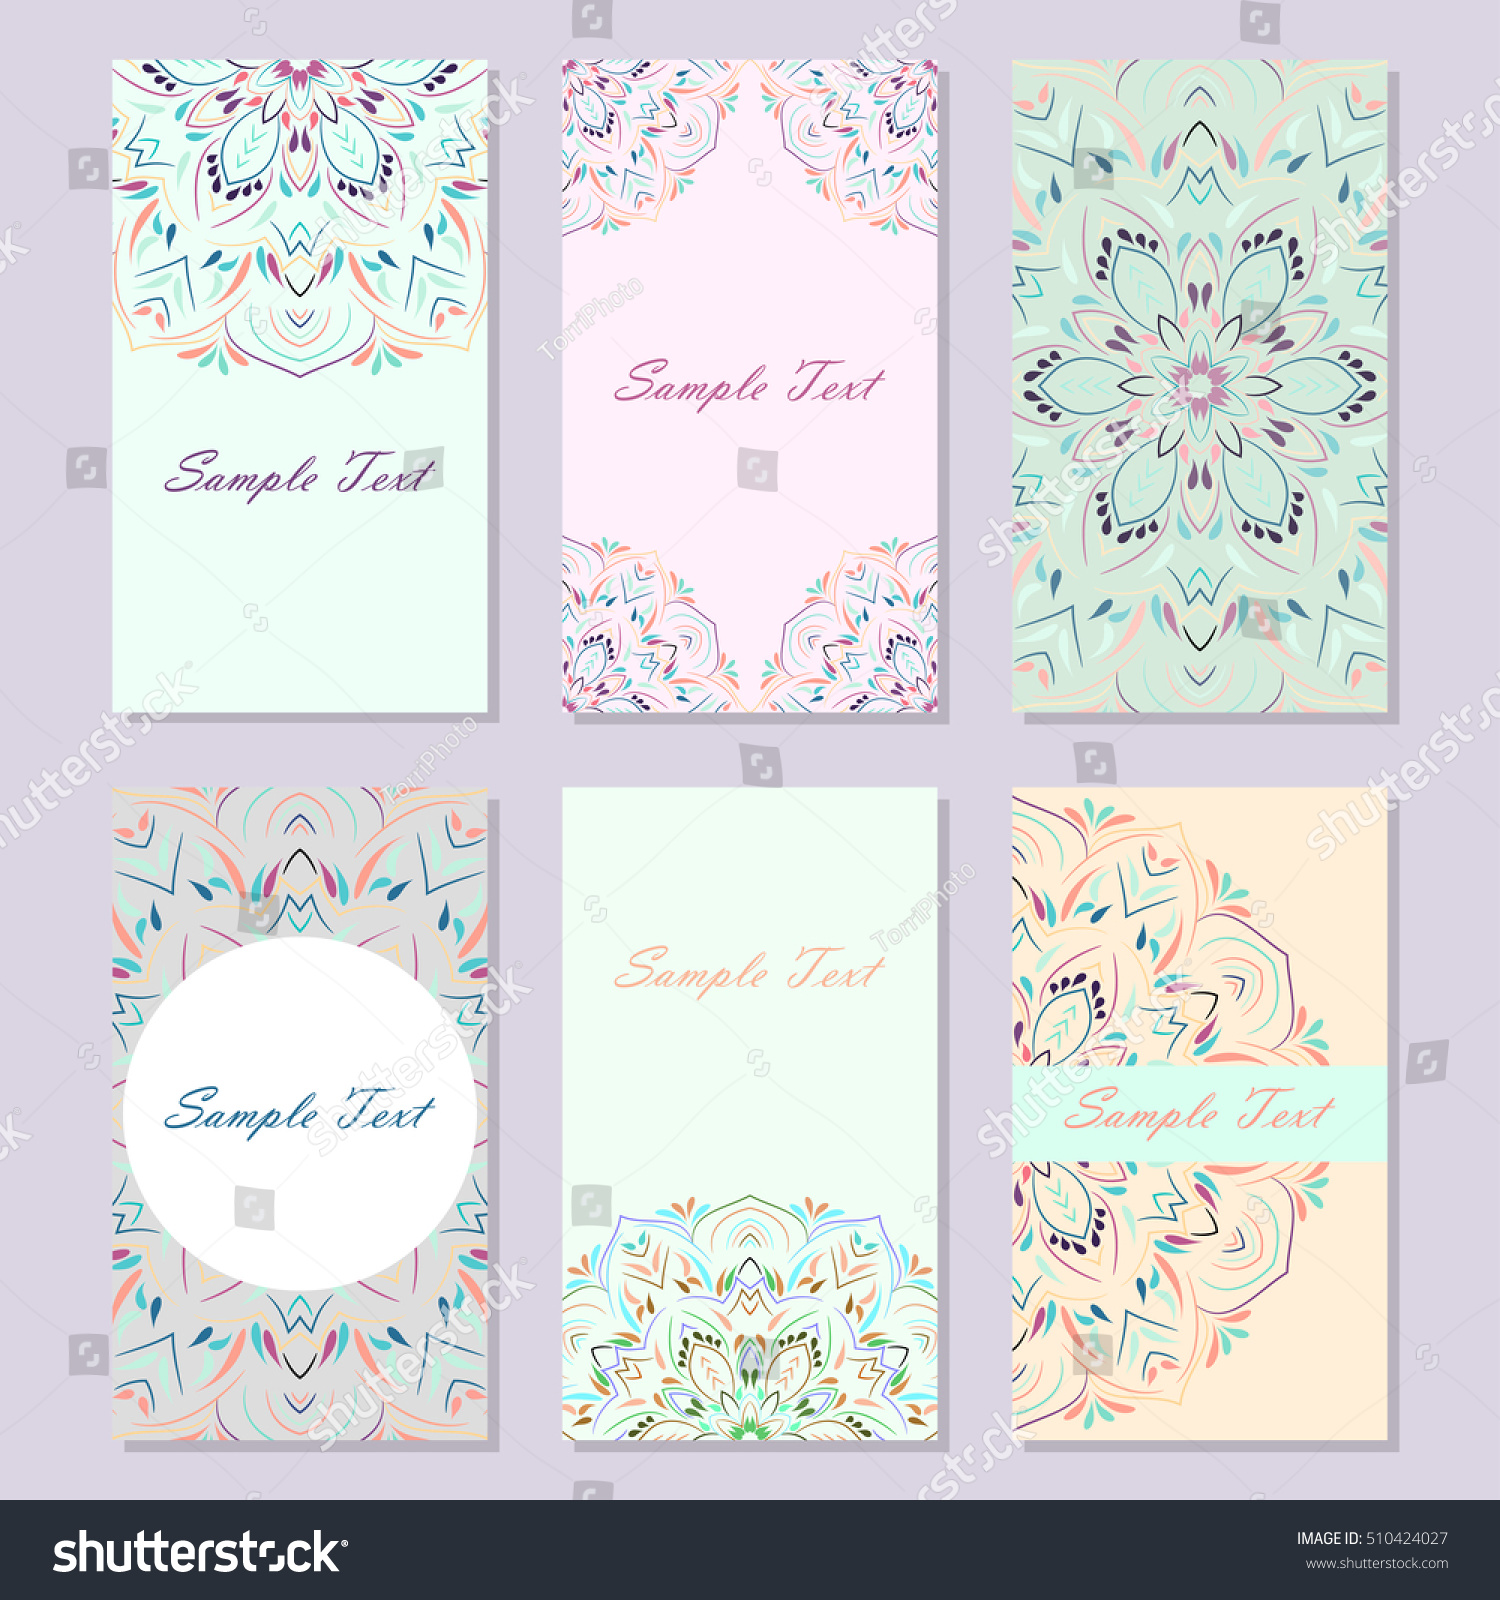 https://www.shutterstock.com/pic-510424027/stock-vector-set-of-elegance-pastel-colored-business-card-or-invitation-templates-with-abstract-floral-design-vector-illustration-eps-8.html